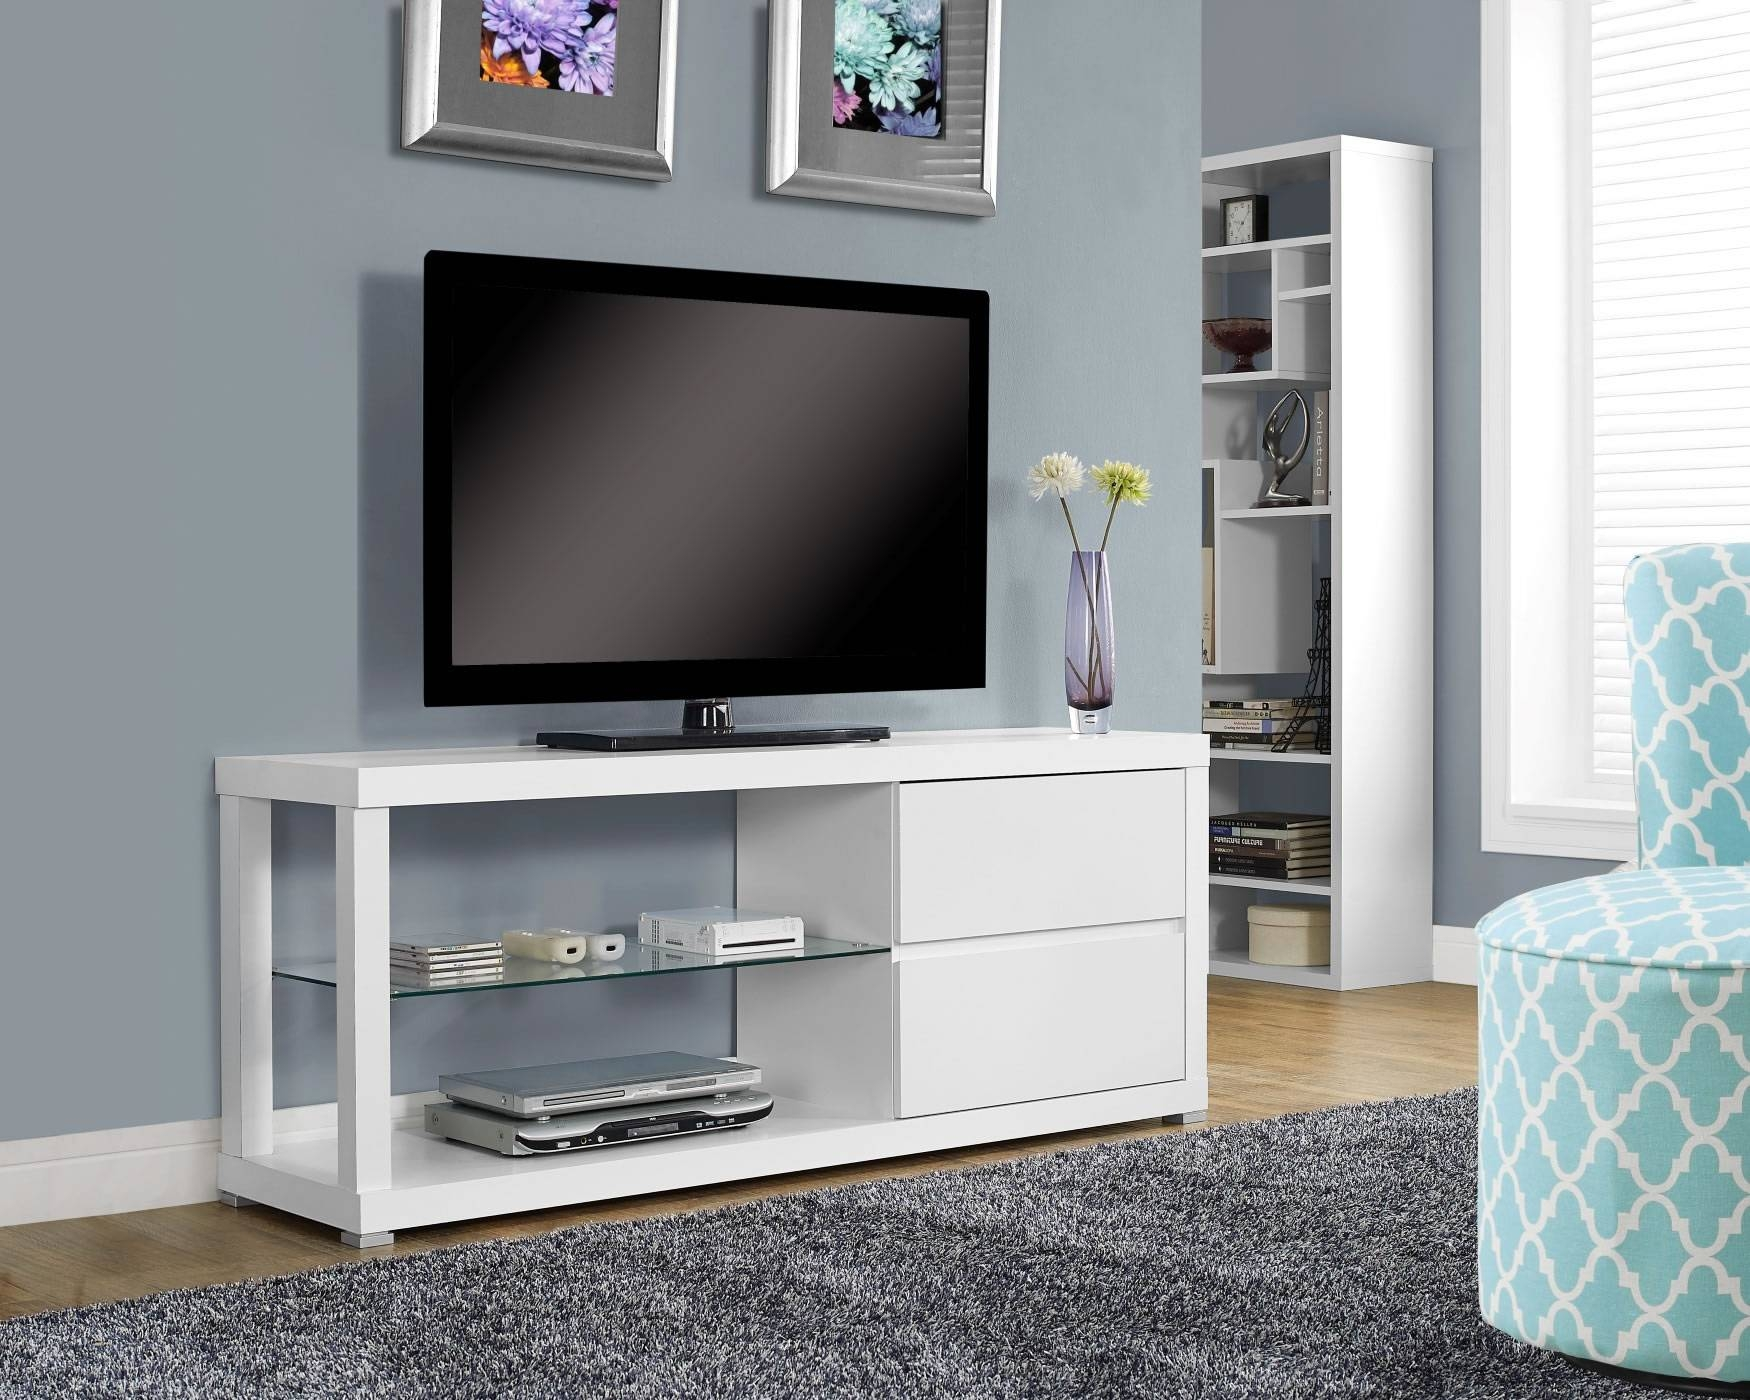 Spec Designsmonarch Specialties Norwich Tv Stand White - I inside Long White Tv Stands (Image 13 of 15)